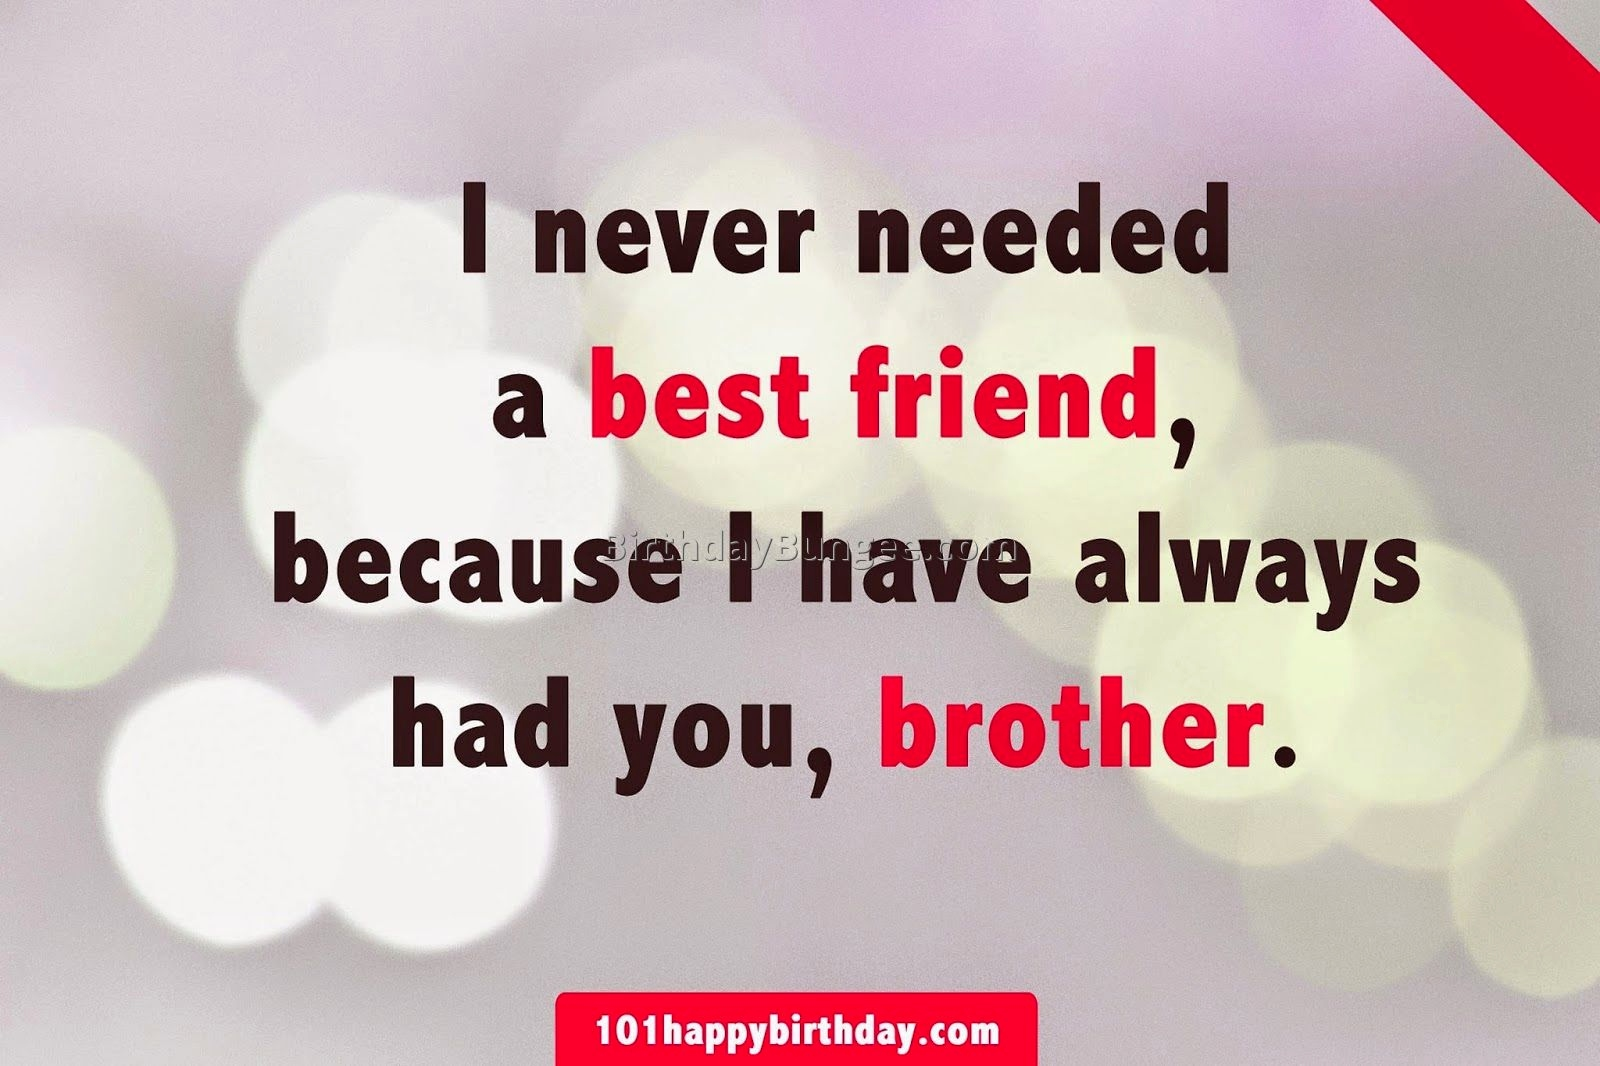 happy birthday brother quotes ; birthday-brother-quotes-new-happy-birthday-to-my-brother-quotes-6-of-birthday-brother-quotes